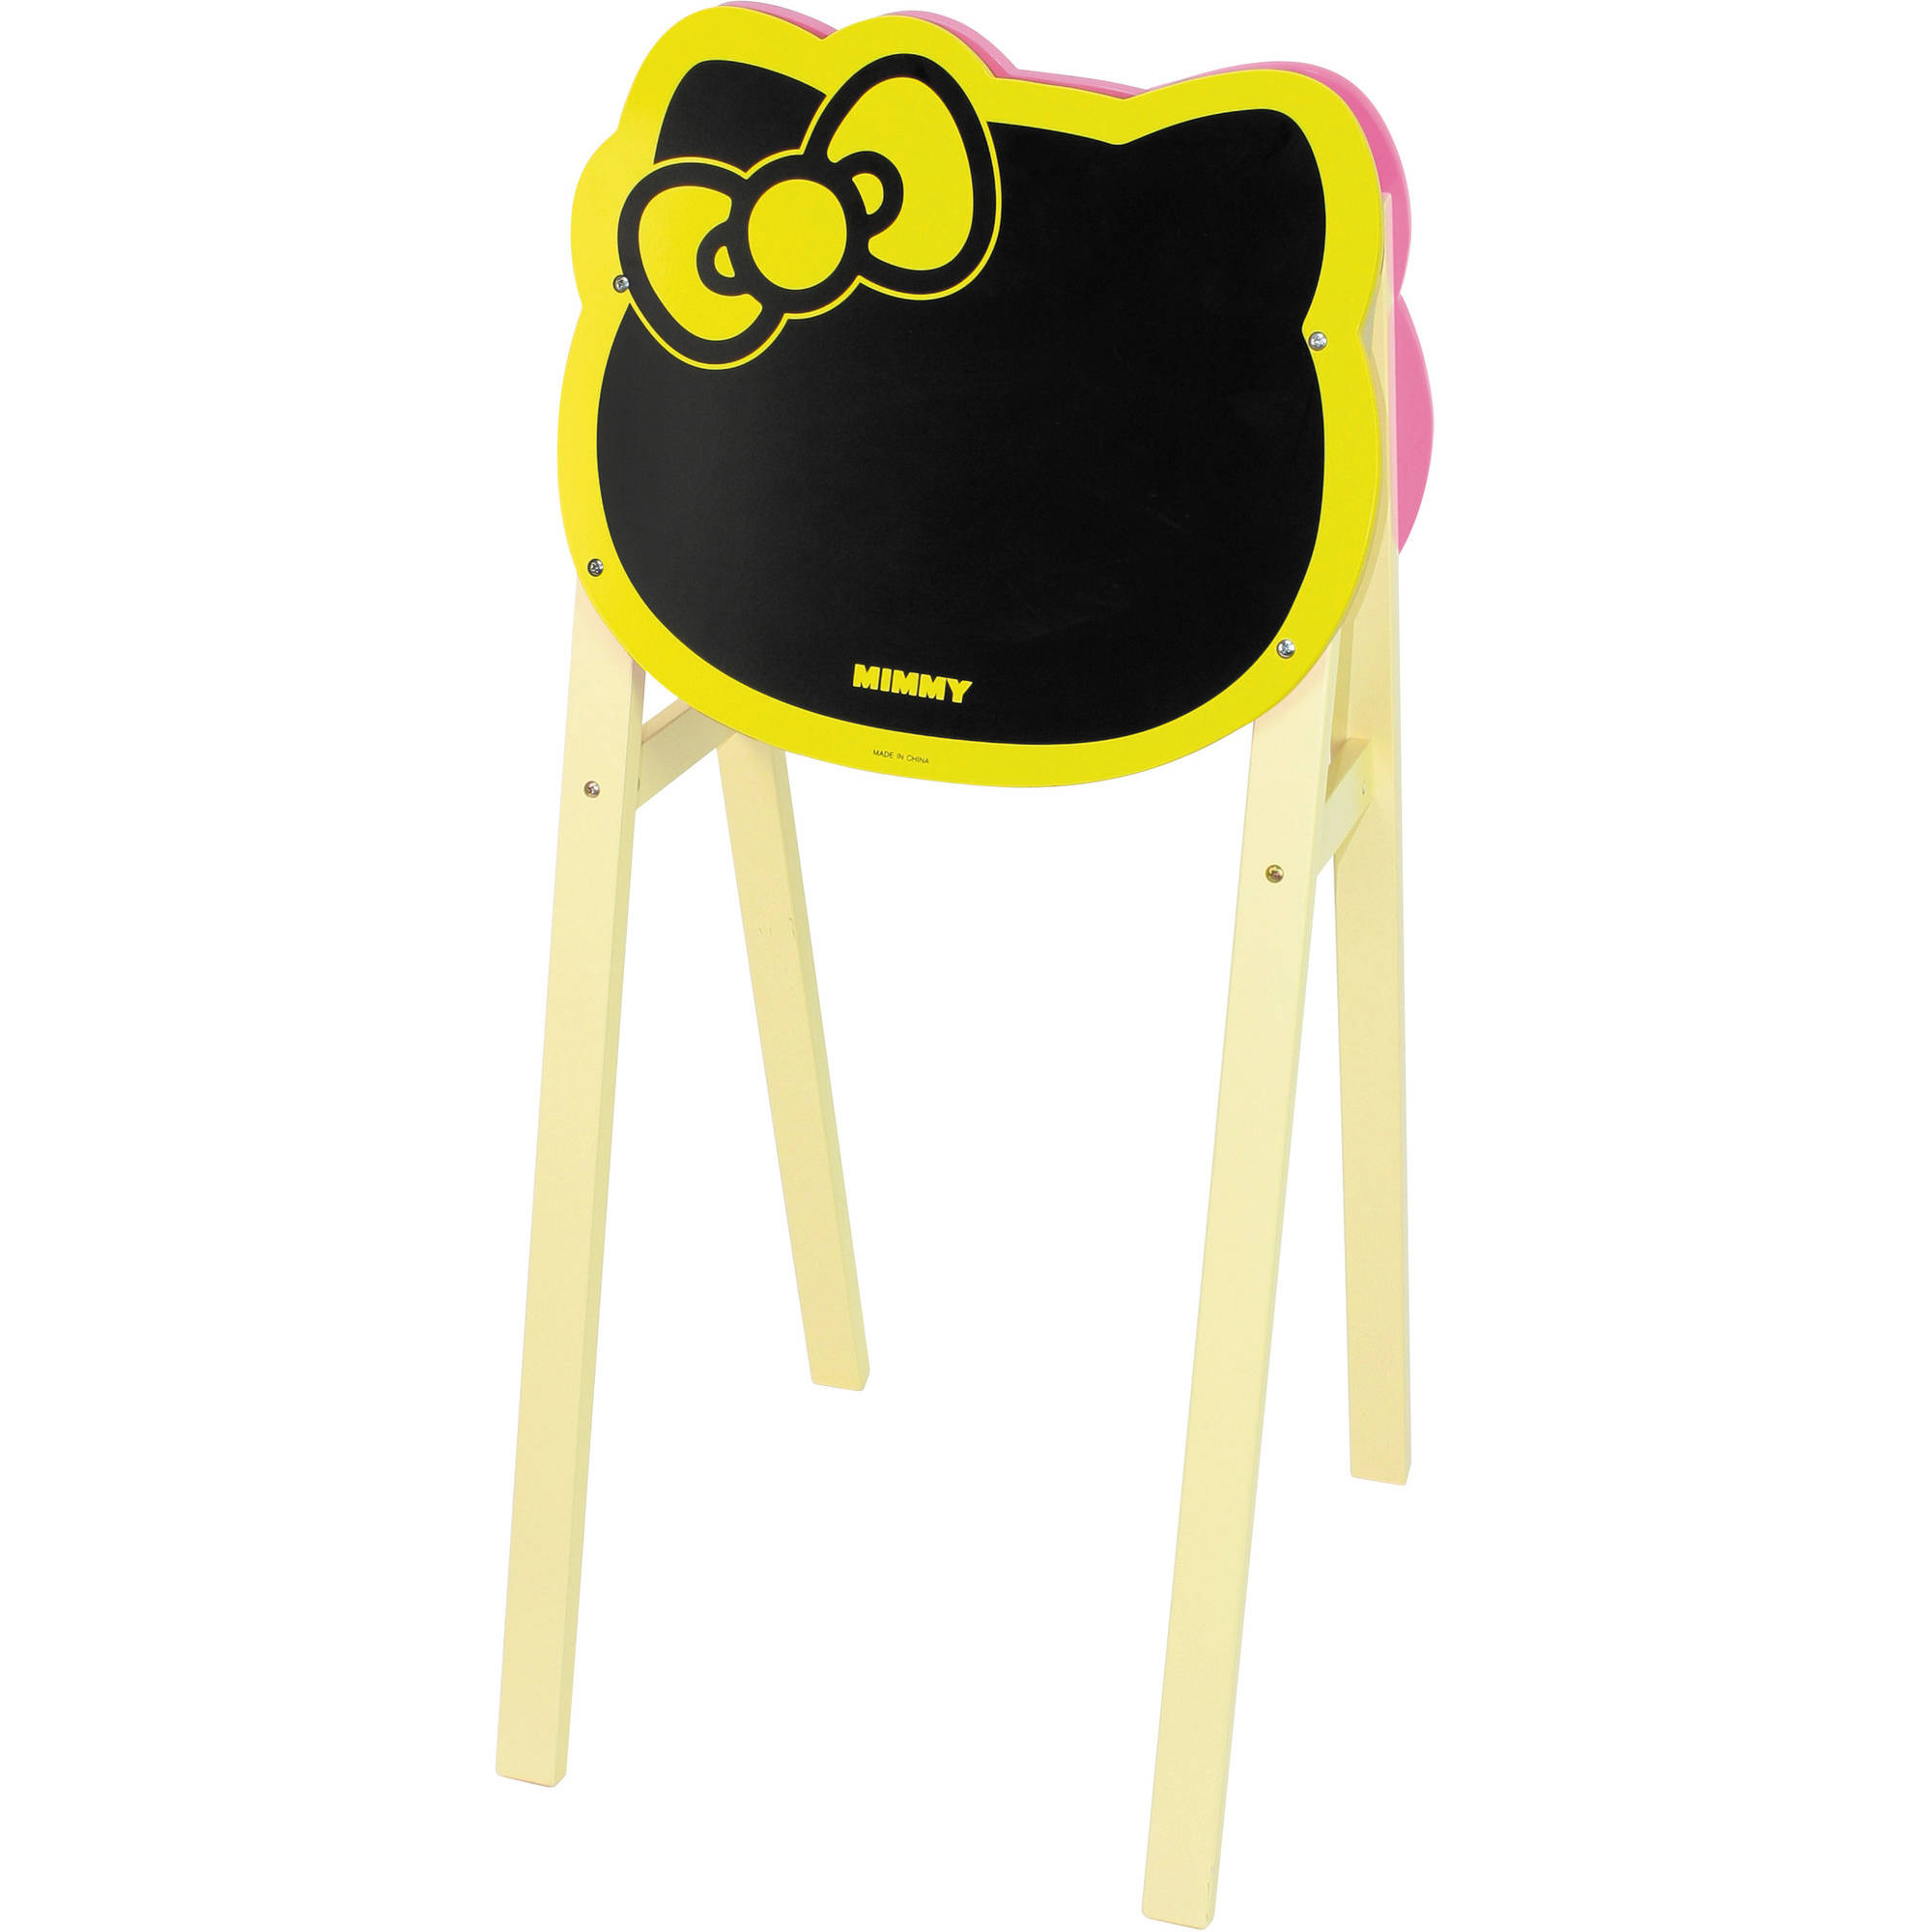 Jupiter Hello Kitty Art Easel by Jupiter Workshops HK Ltd.